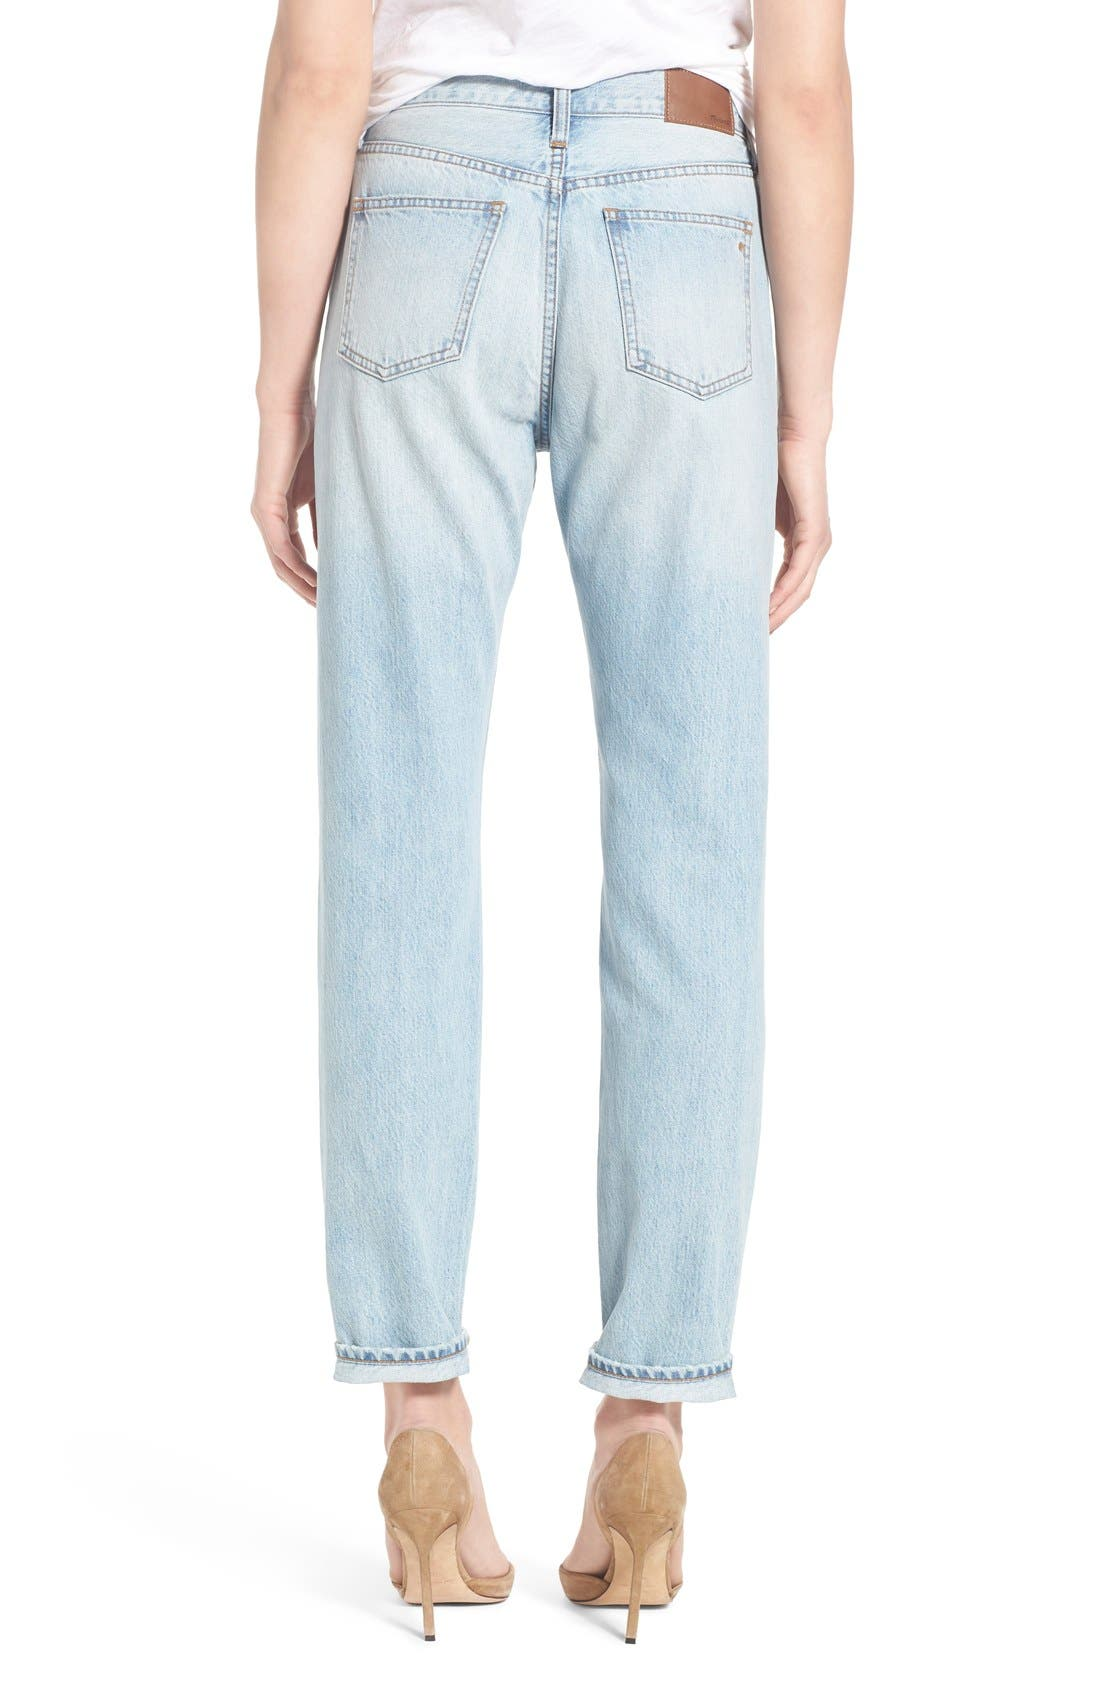 MADEWELL, 'Perfect Summer' High Rise Ankle Jeans, Alternate thumbnail 10, color, FITZGERALD WASH